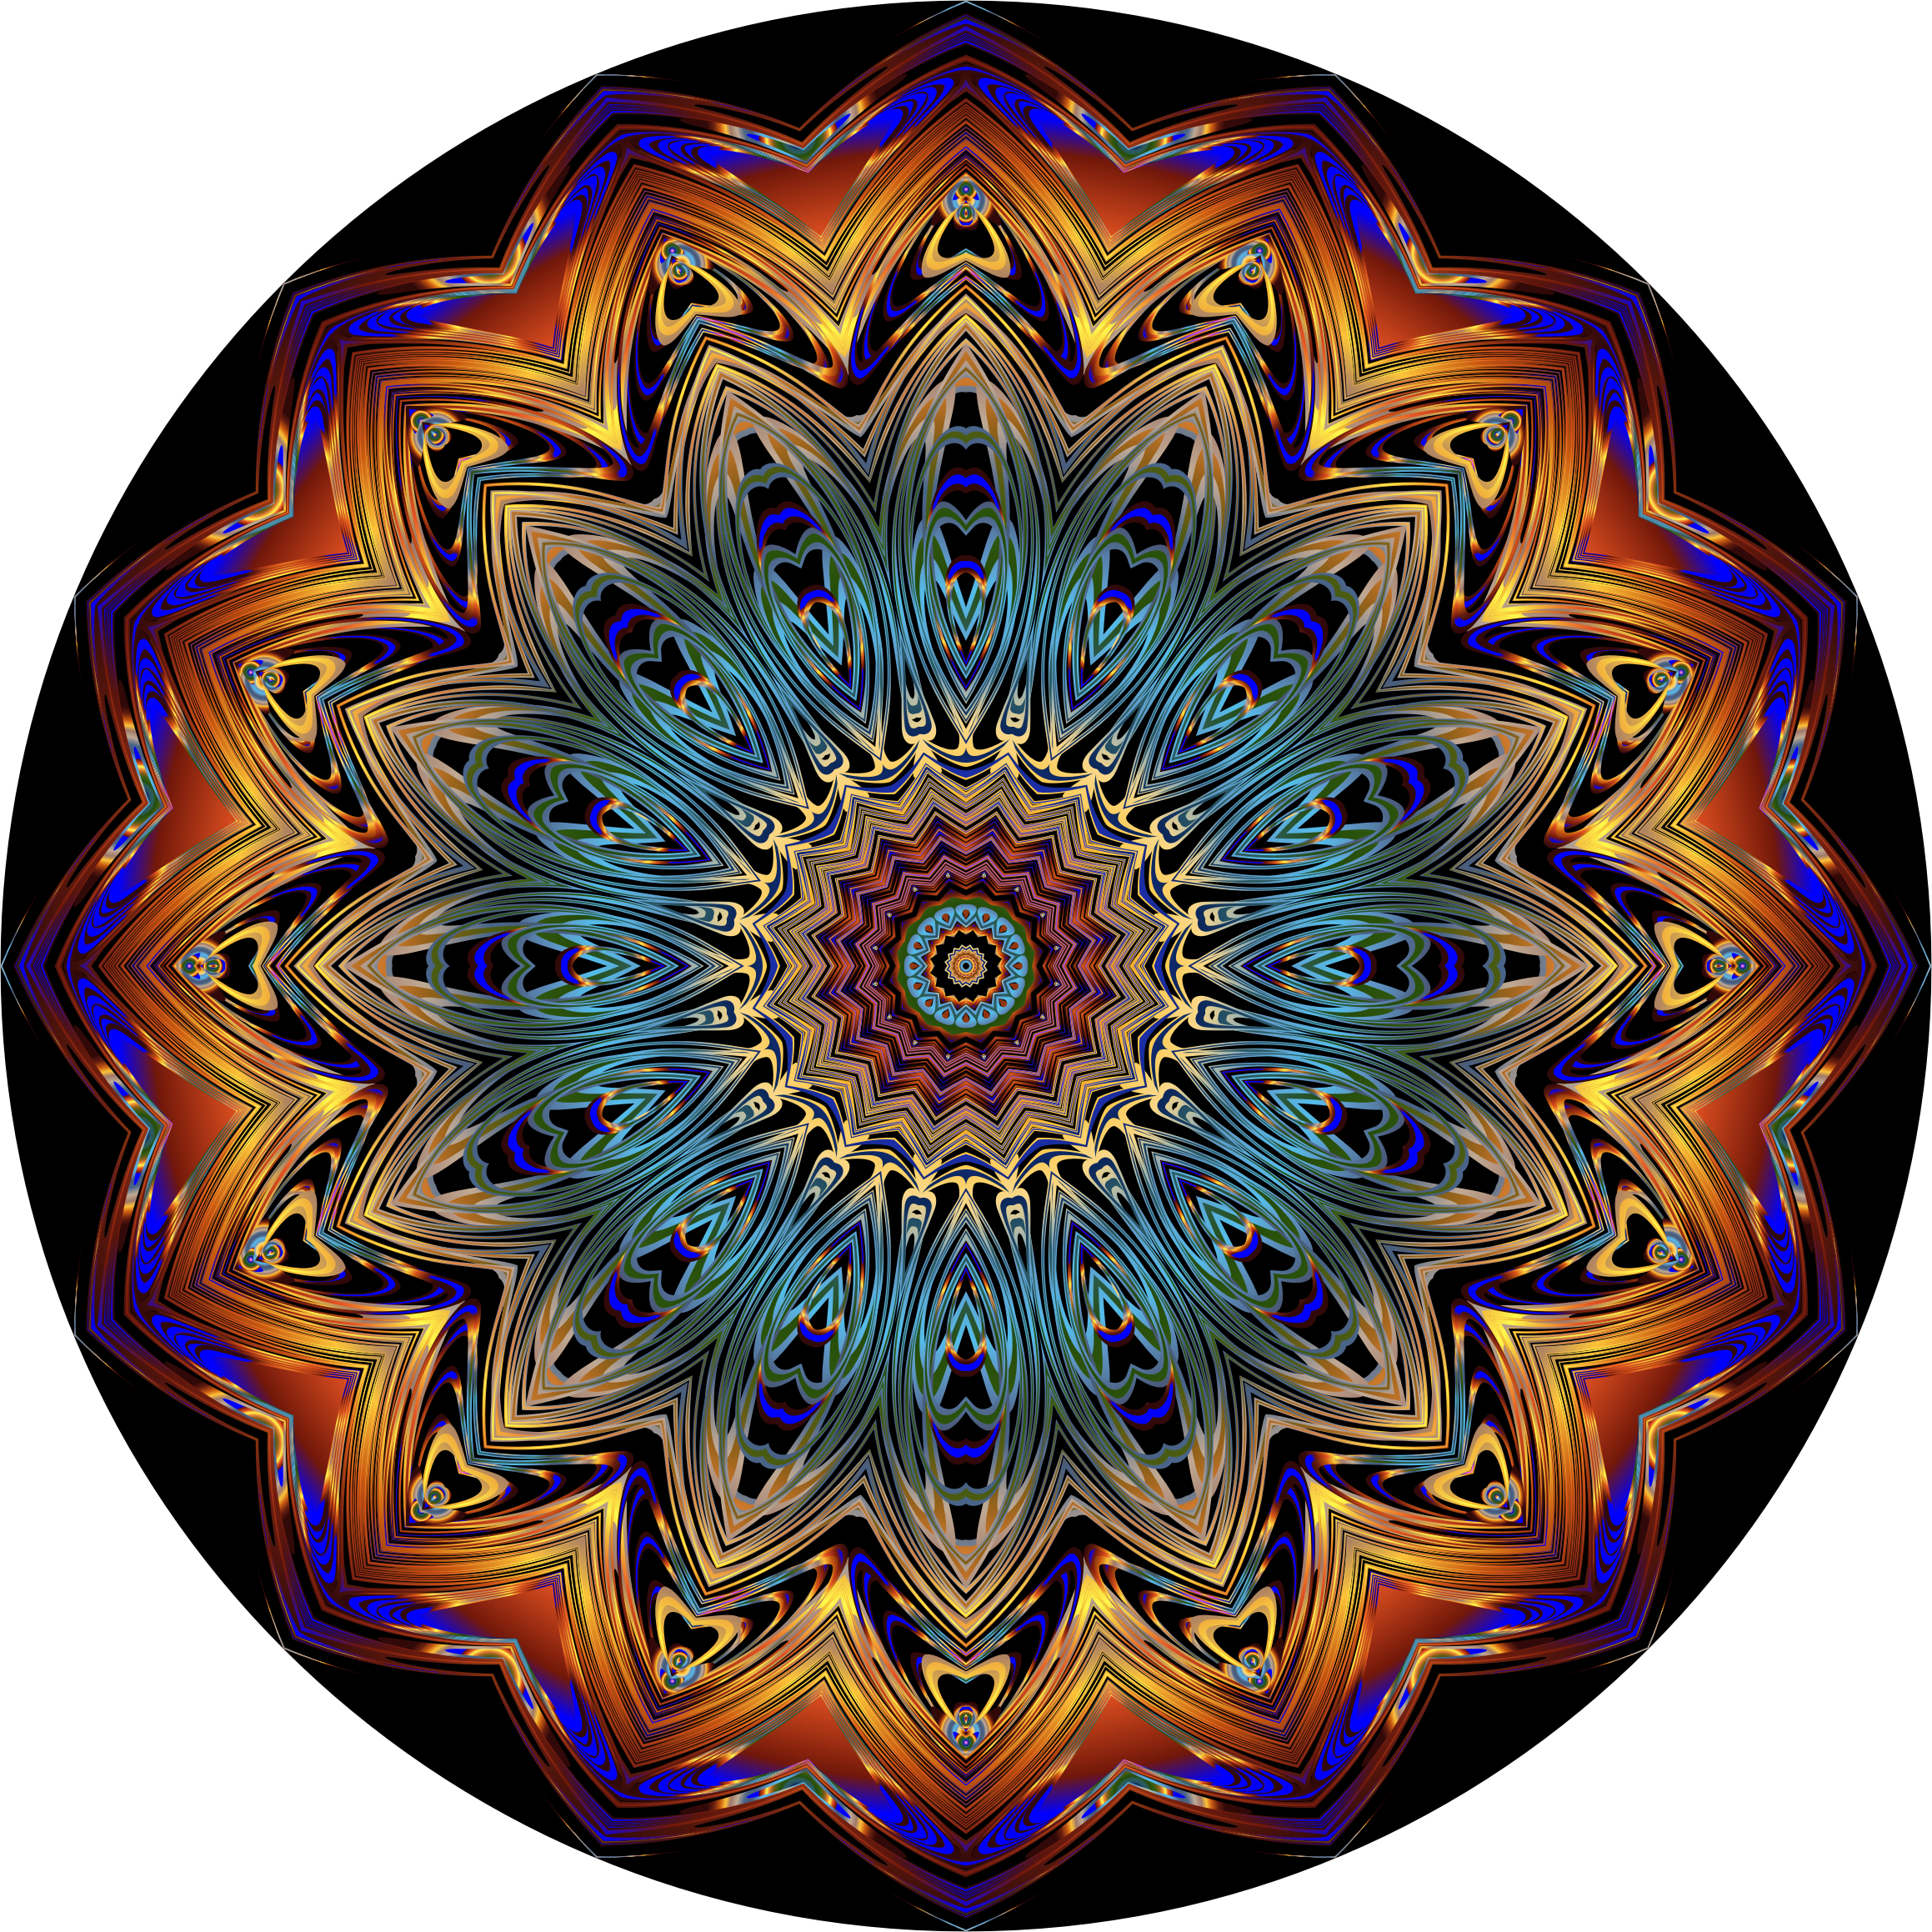 Prismatic Mandala Line Art 9 by GDJ